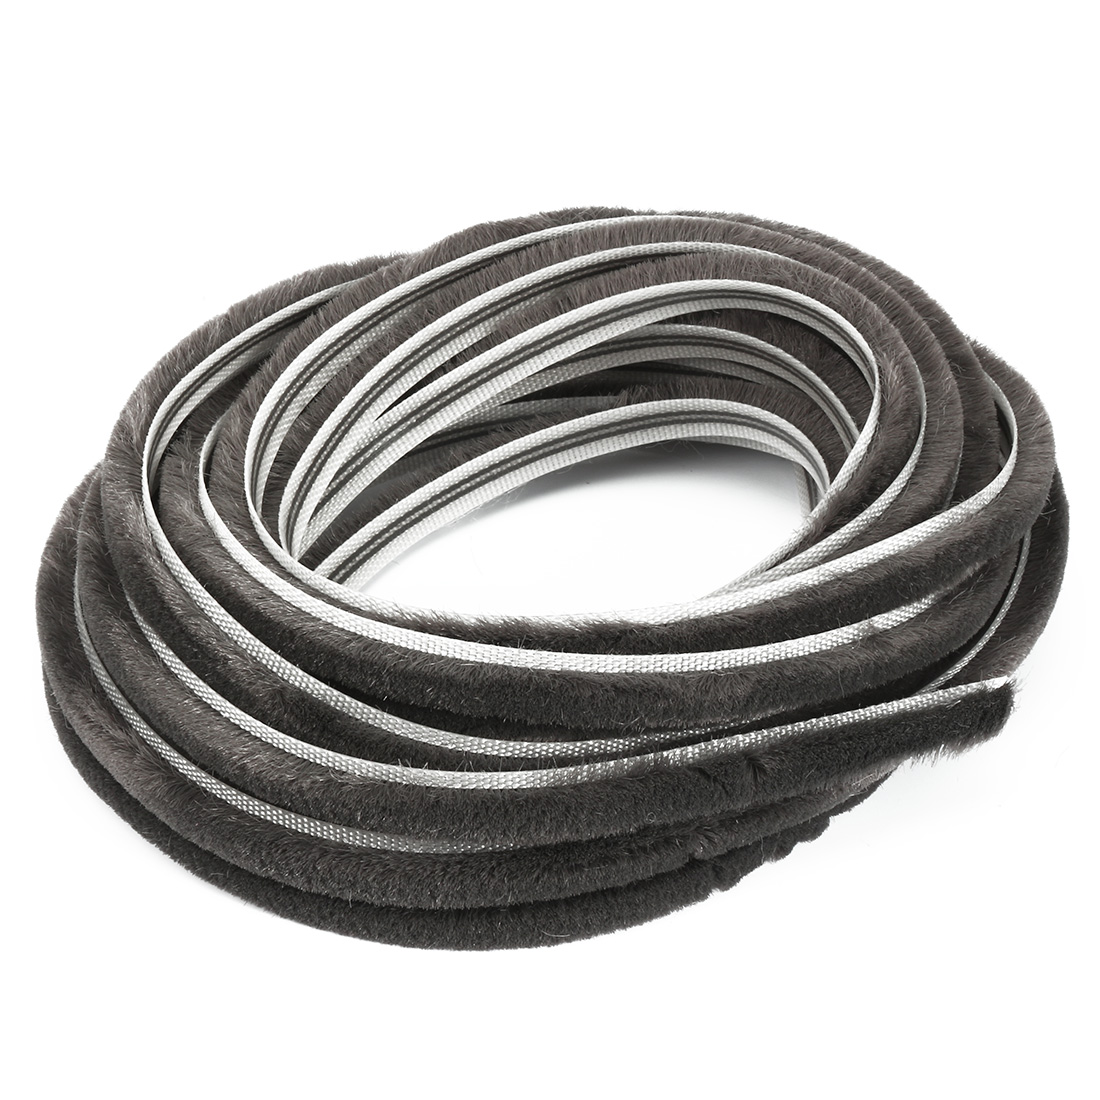 Window Weather Seal Strip 3/16 Inch Width x 1/4-Inch Thick x 10 Feet Length